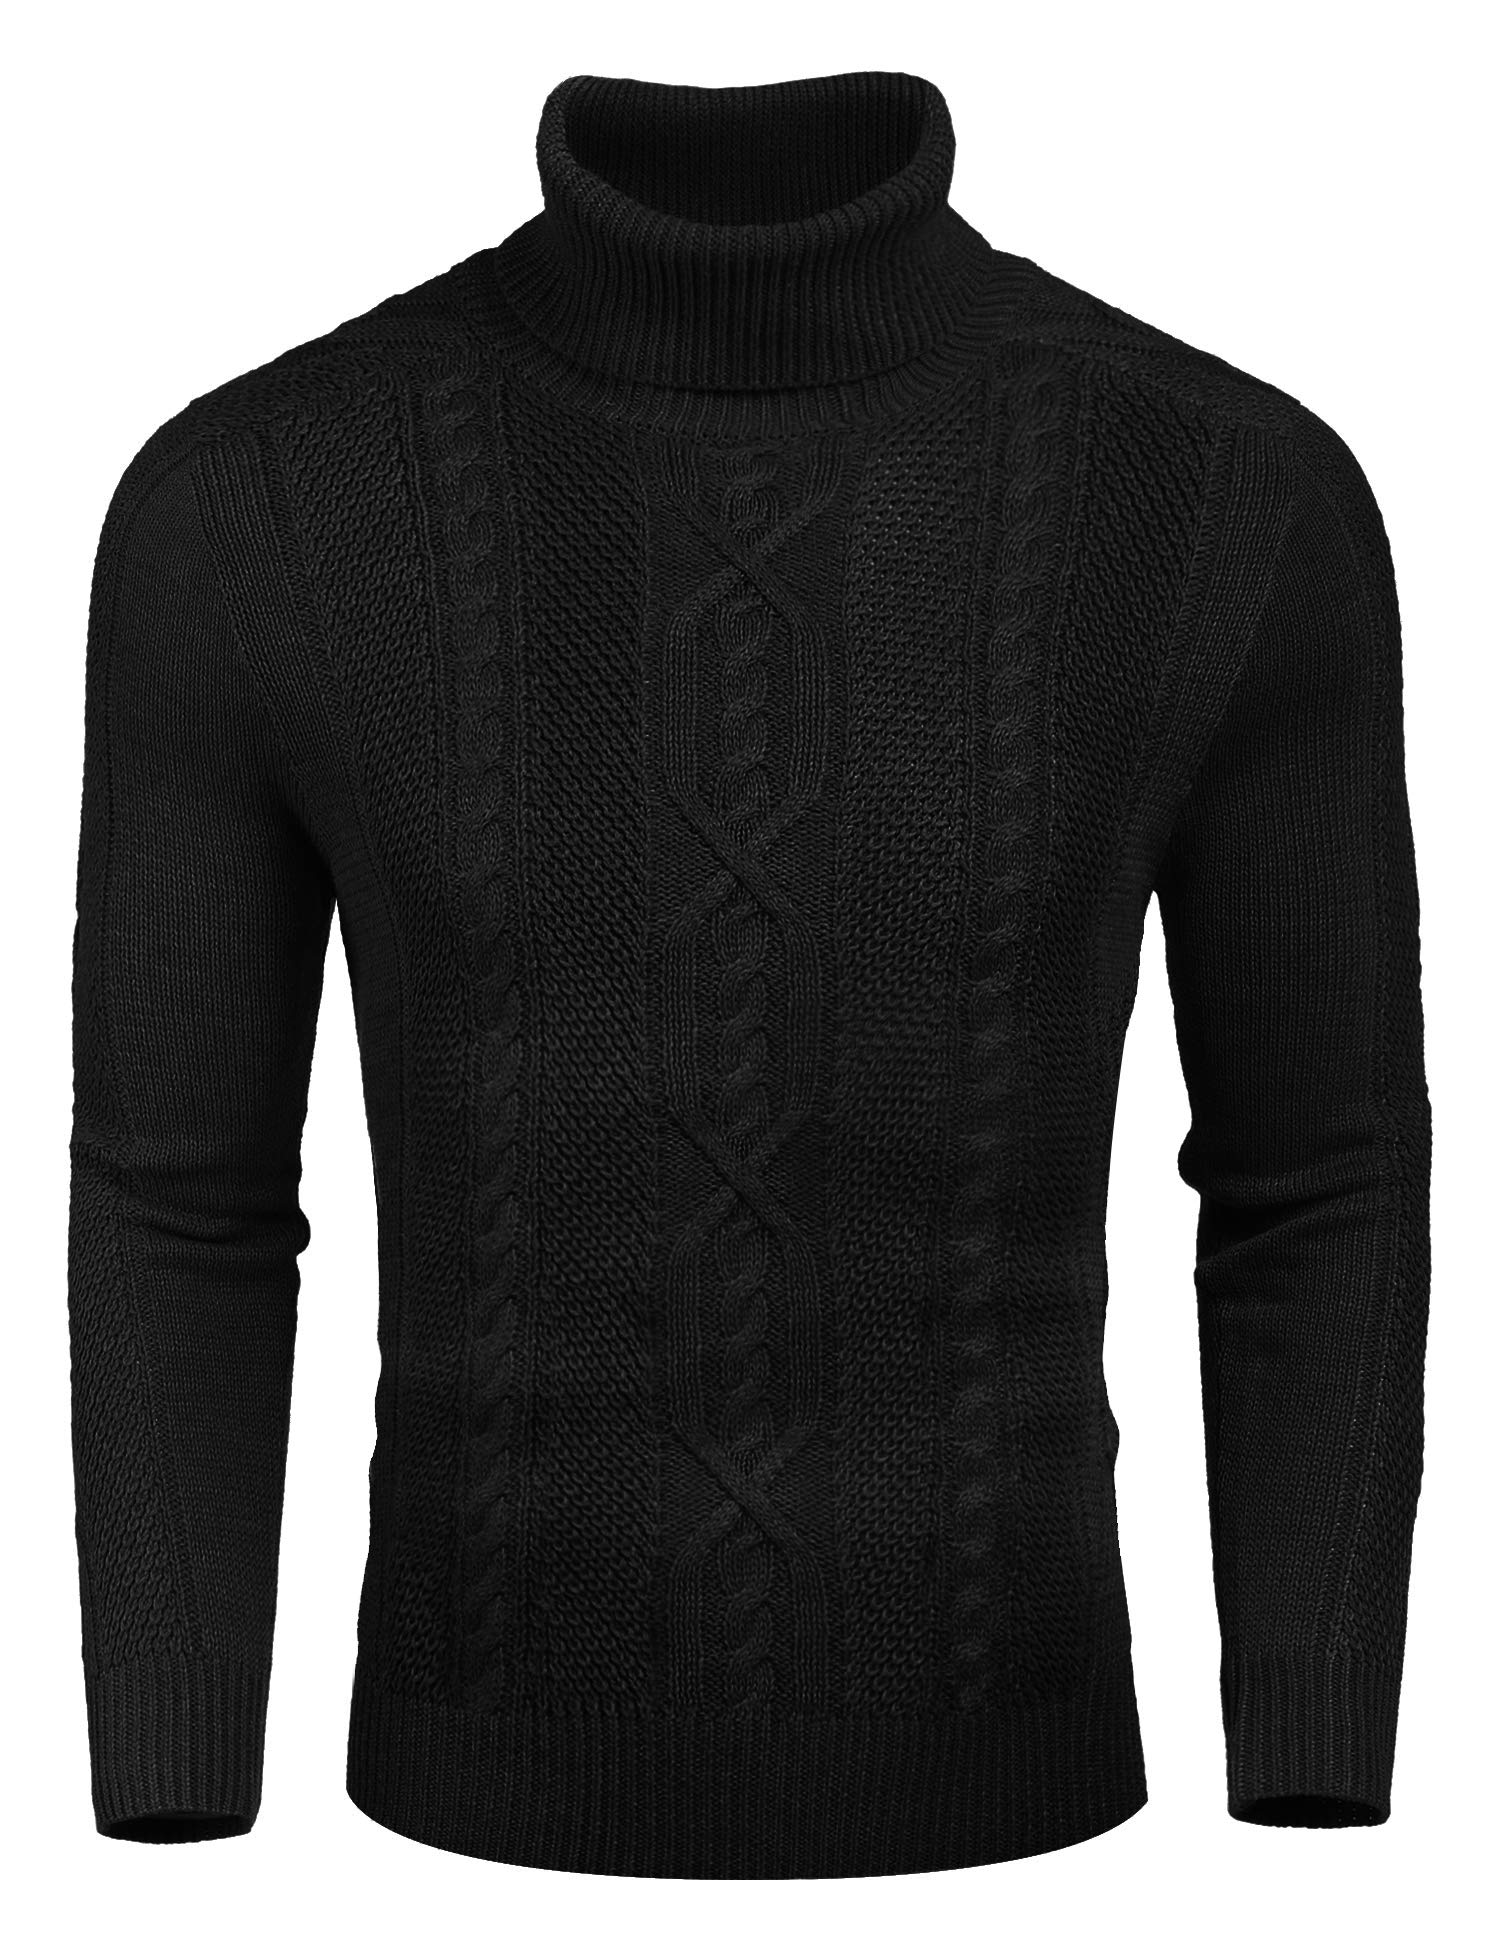 COOFANDY Men's Casual Turtleneck Sweater Warm Slim Fit Twisted Knitted Pullover Sweaters